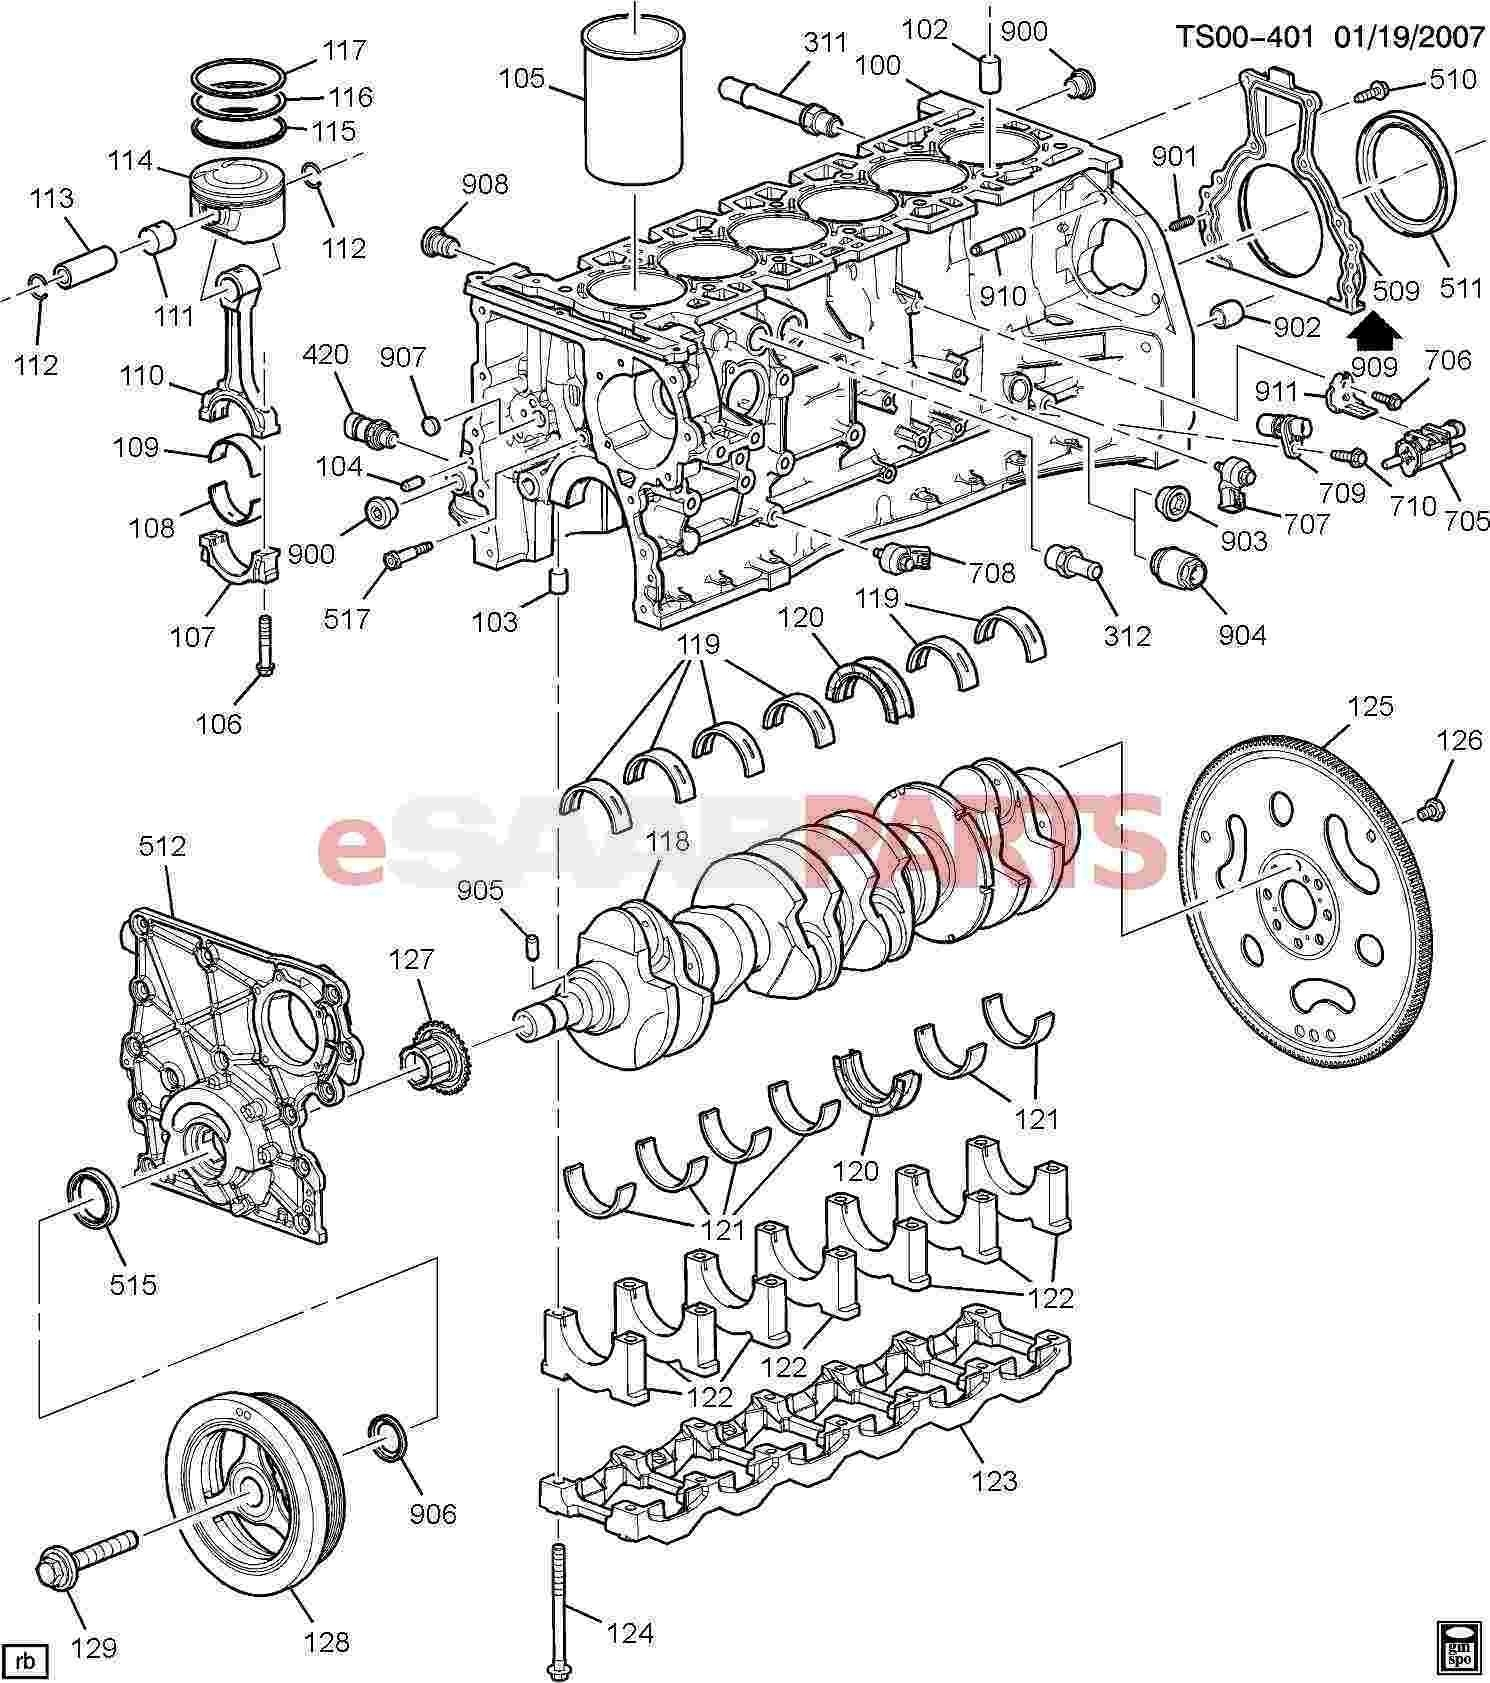 Saab 9 3 Engine Diagram 2001 Saab 9 5 Wiring Diagram Saab Wiring Diagrams Instructions Of Saab 9 3 Engine Diagram